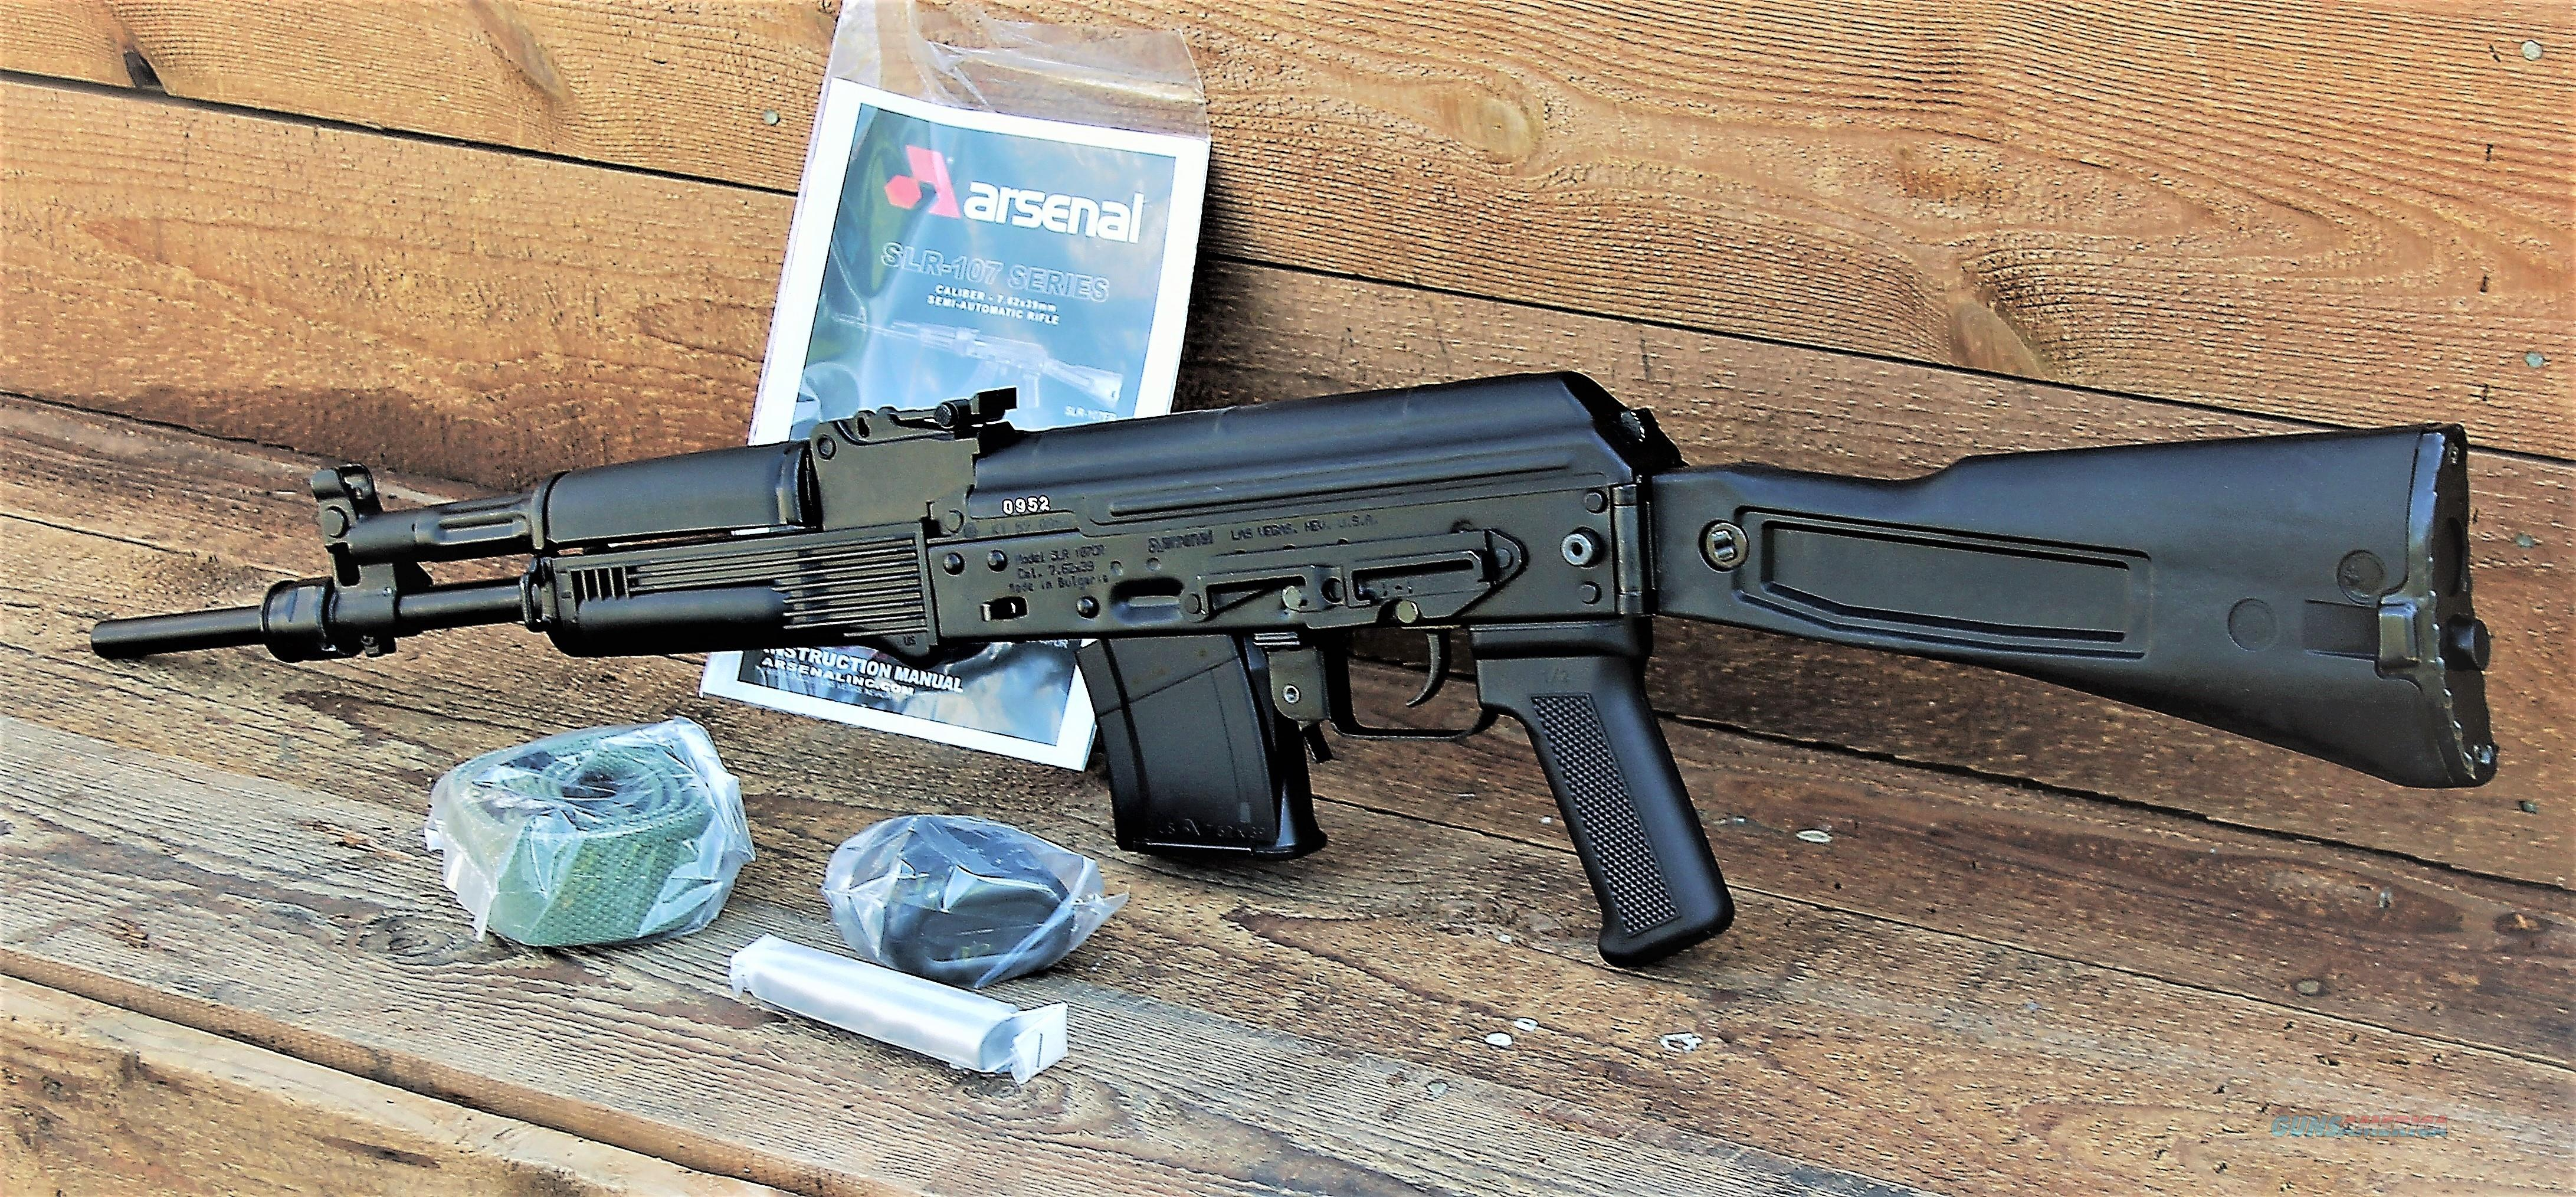 """WARNING NON California STATE COMPLIANT IT'S Not SAFE ! EASY PAY $105 Arsenal mil-spec  SLR107CR SLR107-61  AK-47 16.25"""" Chrome Lined Hammer Forged Barrel AK47 Threaded Muzzle Stamped Receiver Side Rail Folding Stock Black Polymer Furniture   Guns > Rifles > AK-47 Rifles (and copies) > Folding Stock"""